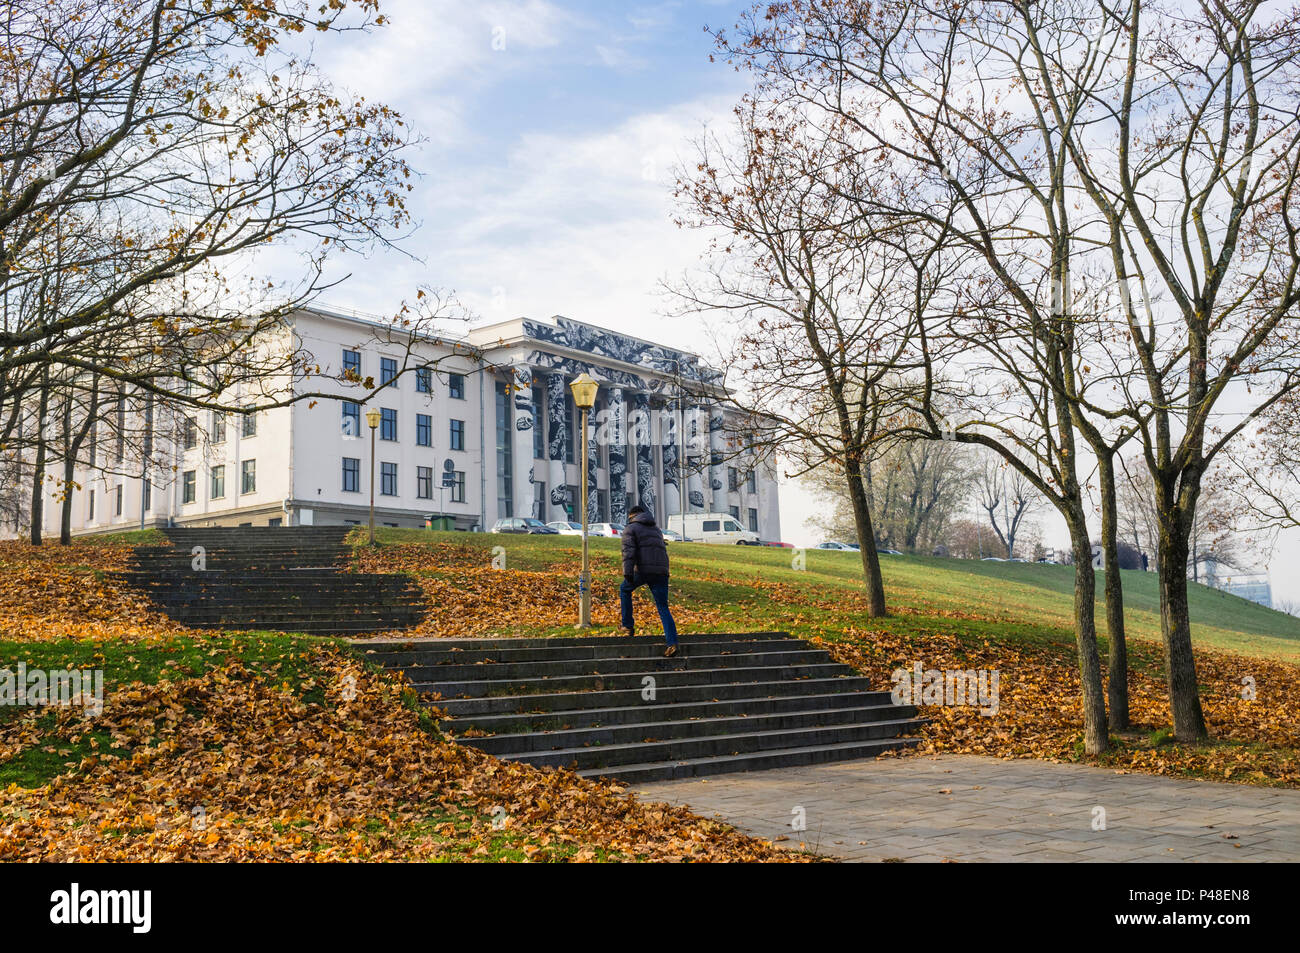 Former Workers Union Building on Tauras Hill, Vilnius, Lithuania, Europe - Stock Image